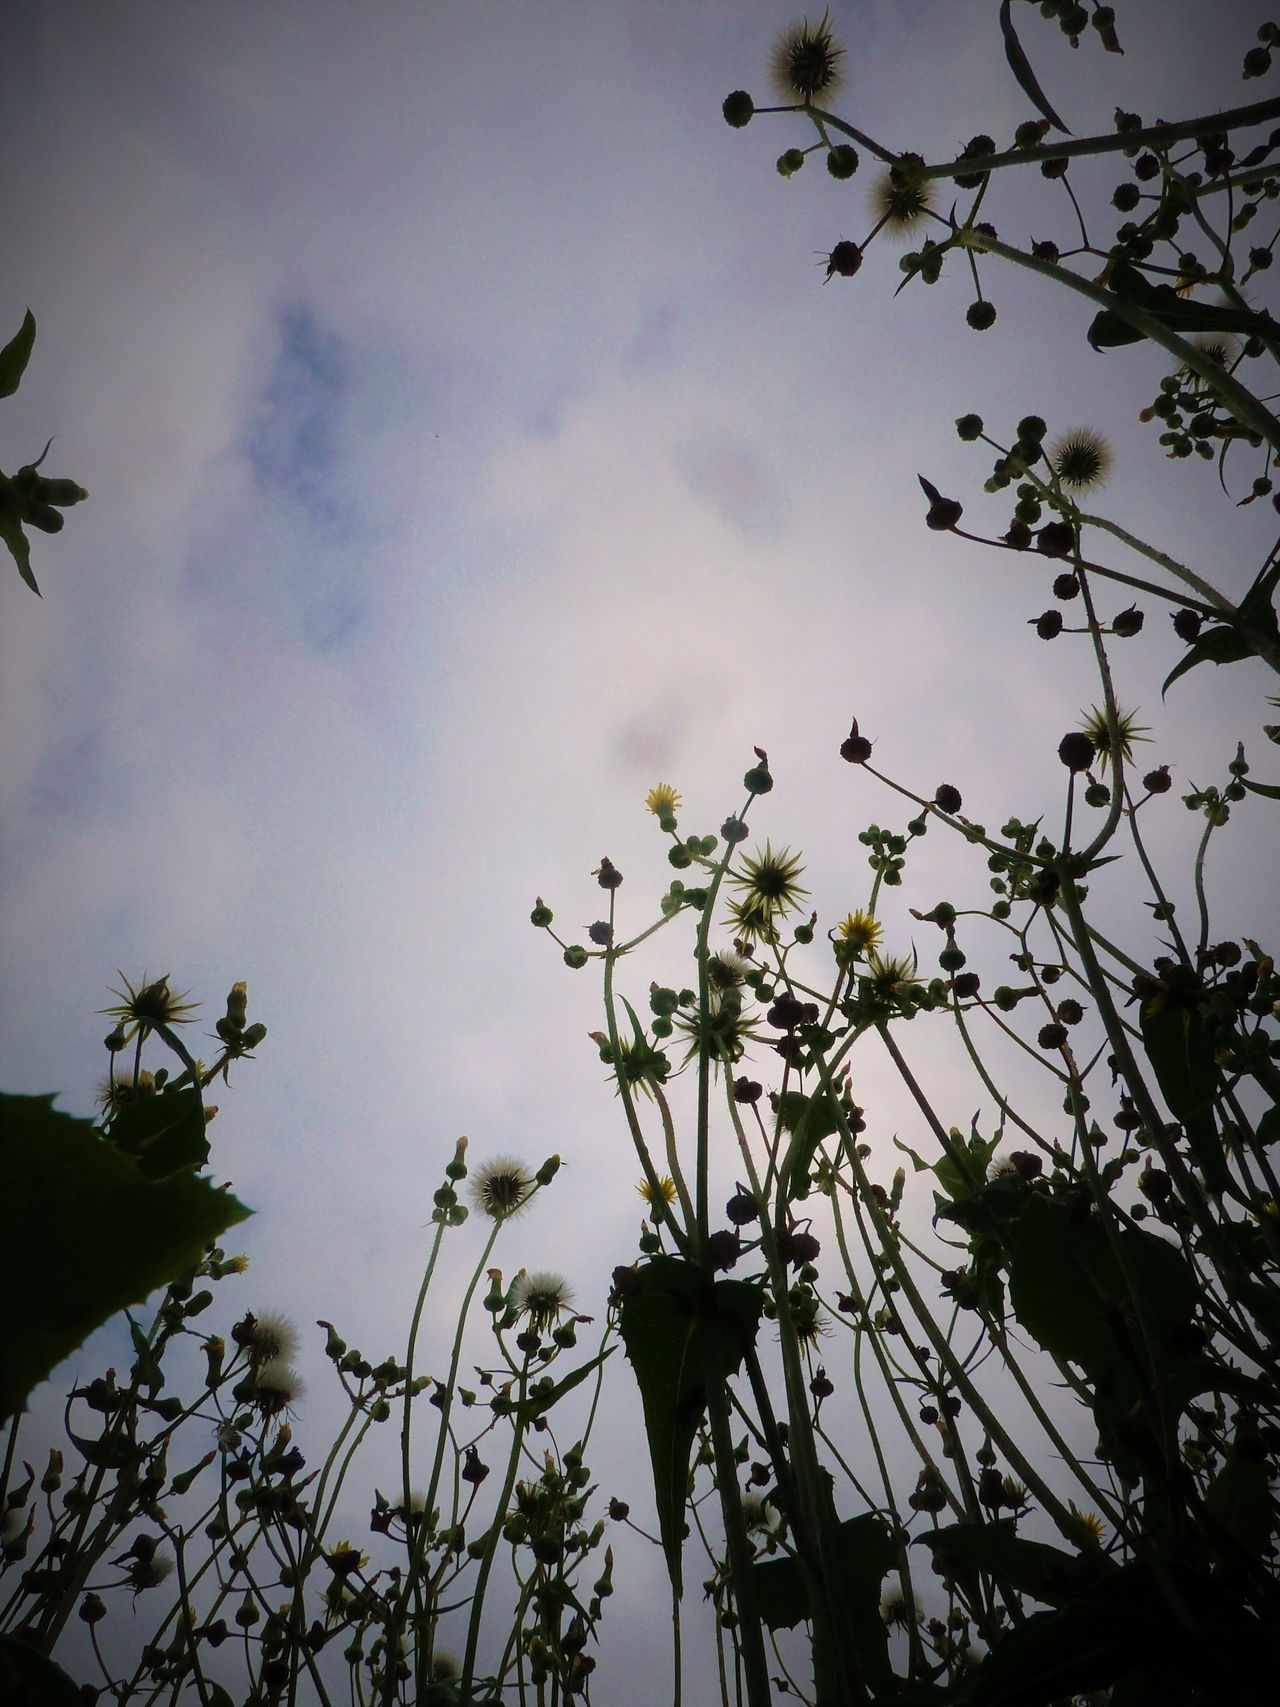 dandelions in the wind Beauty In Nature Blowing In The Wind... Botanical Dandelion Day Delicate Beauty Fine Flowerhead Fluffy Fragility Growth Leaves Life Cycle Flowers Light And Shadow Nature Overgrown Garden Plant Seeds Flower Sky And Clouds Soft Stem Stems Weed